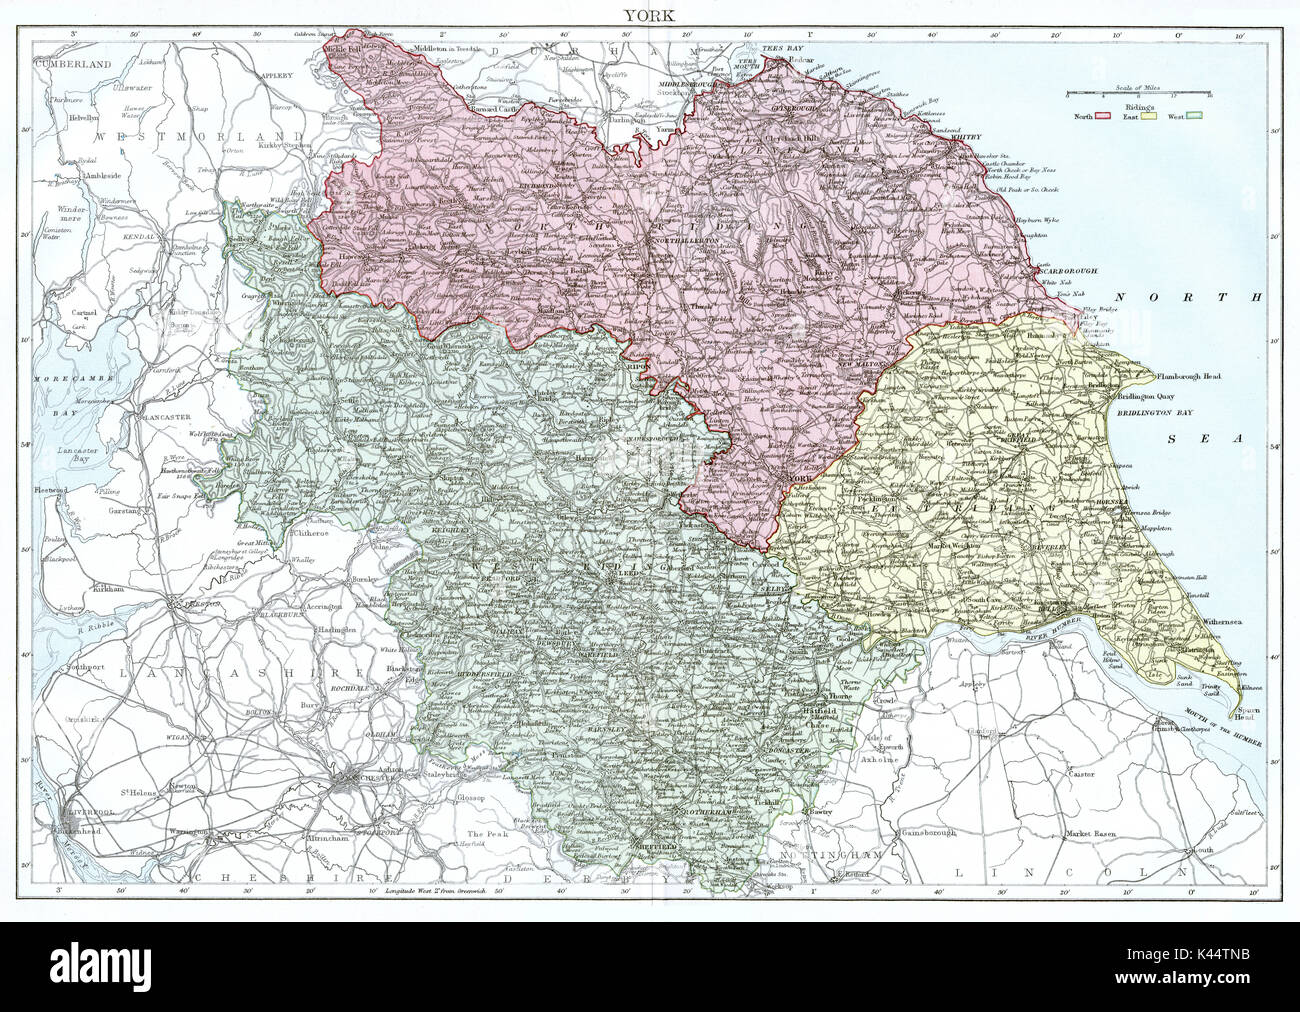 Antique map, circa 1875, of Yorkshire - Stock Image